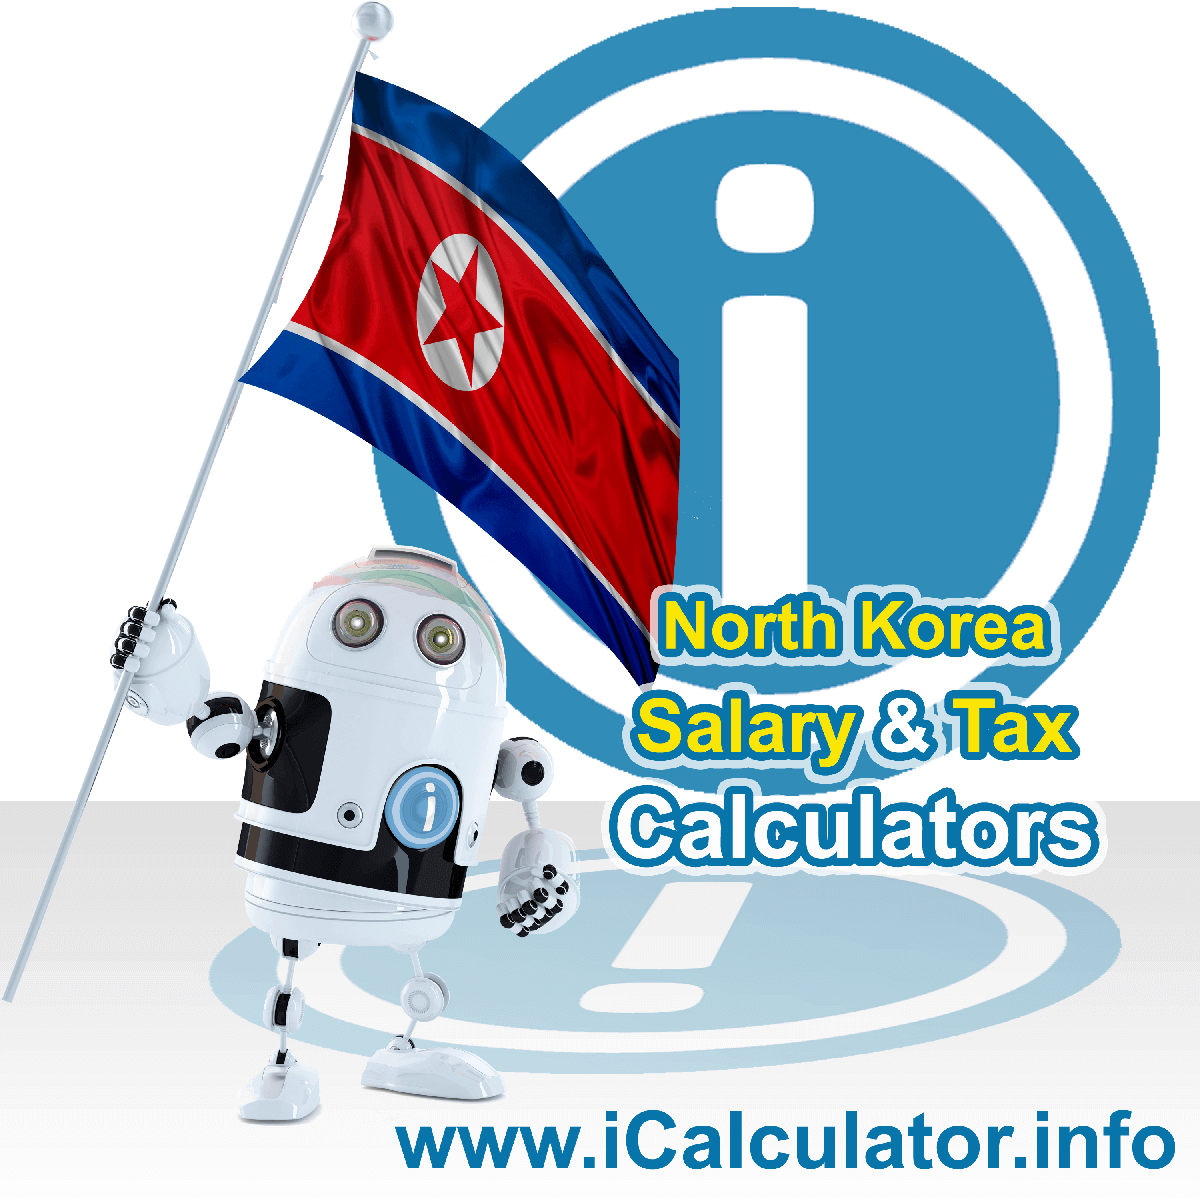 North Korea Wage Calculator. This image shows the North Korea flag and information relating to the tax formula for the North Korea Tax Calculator